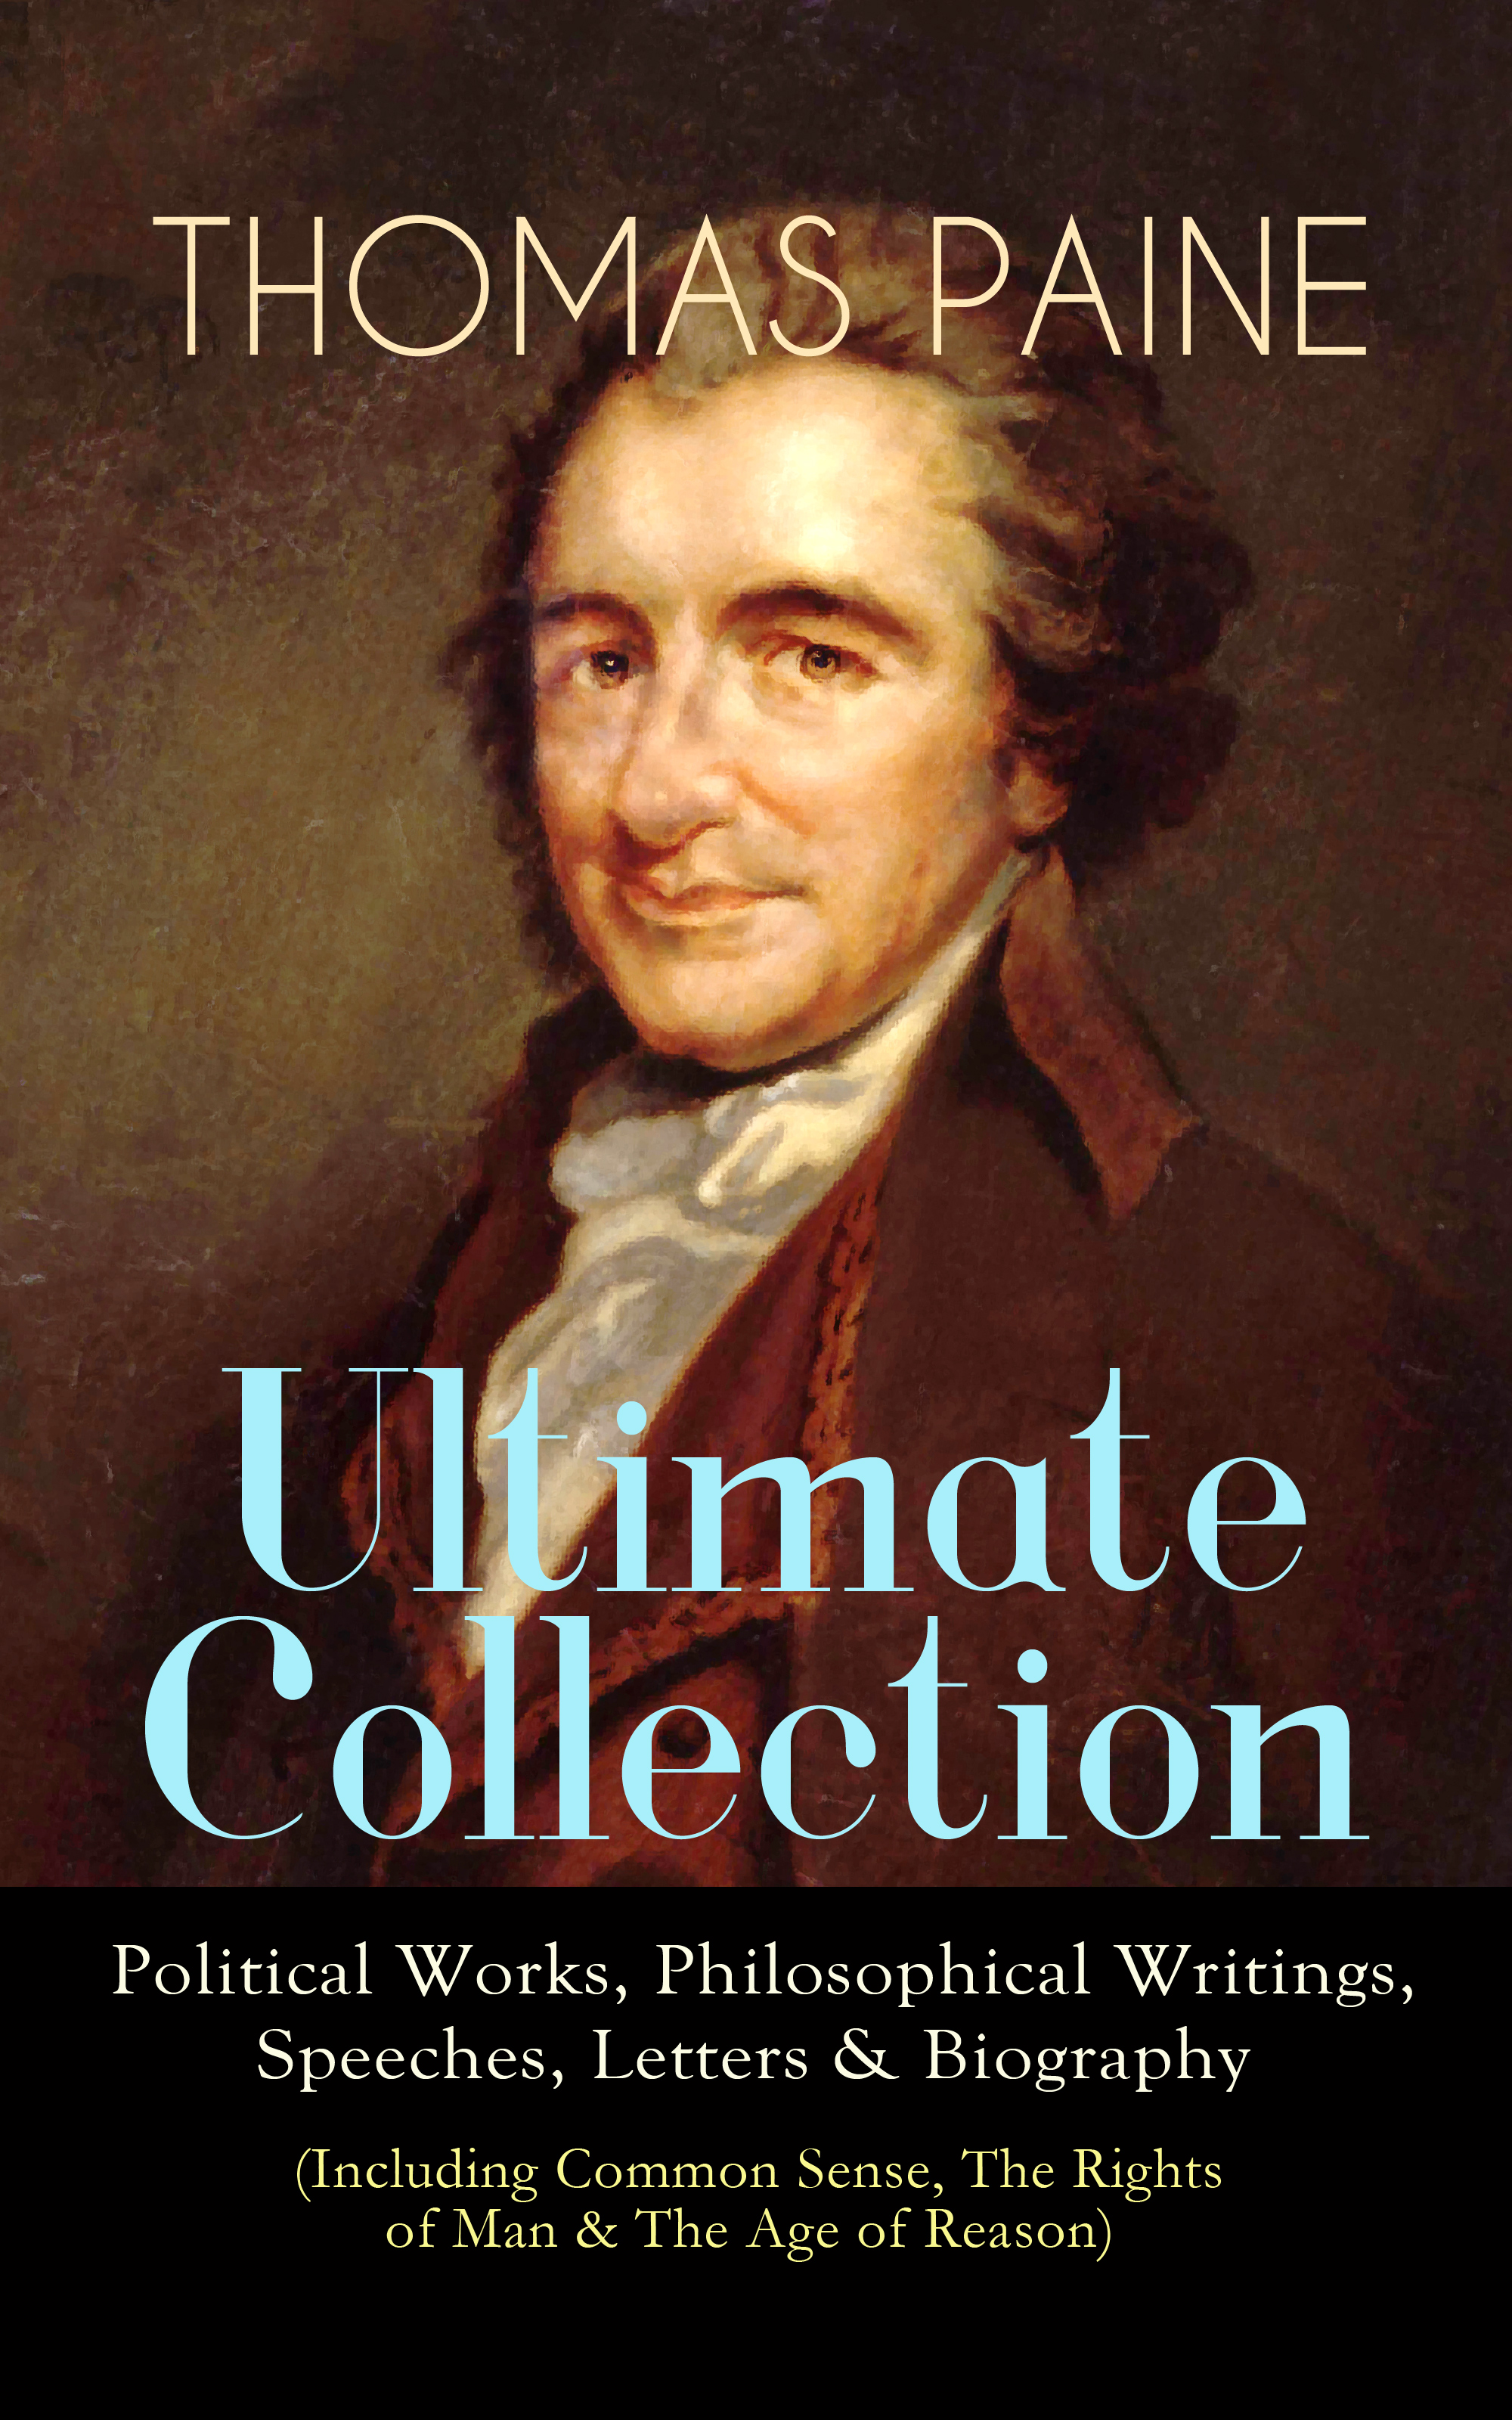 Thomas Paine THOMAS PAINE Ultimate Collection: Political Works, Philosophical Writings, Speeches, Letters & Biography (Including Common Sense, The Rights of Man & The Age of Reason) w northcutt mitterrand a political biography